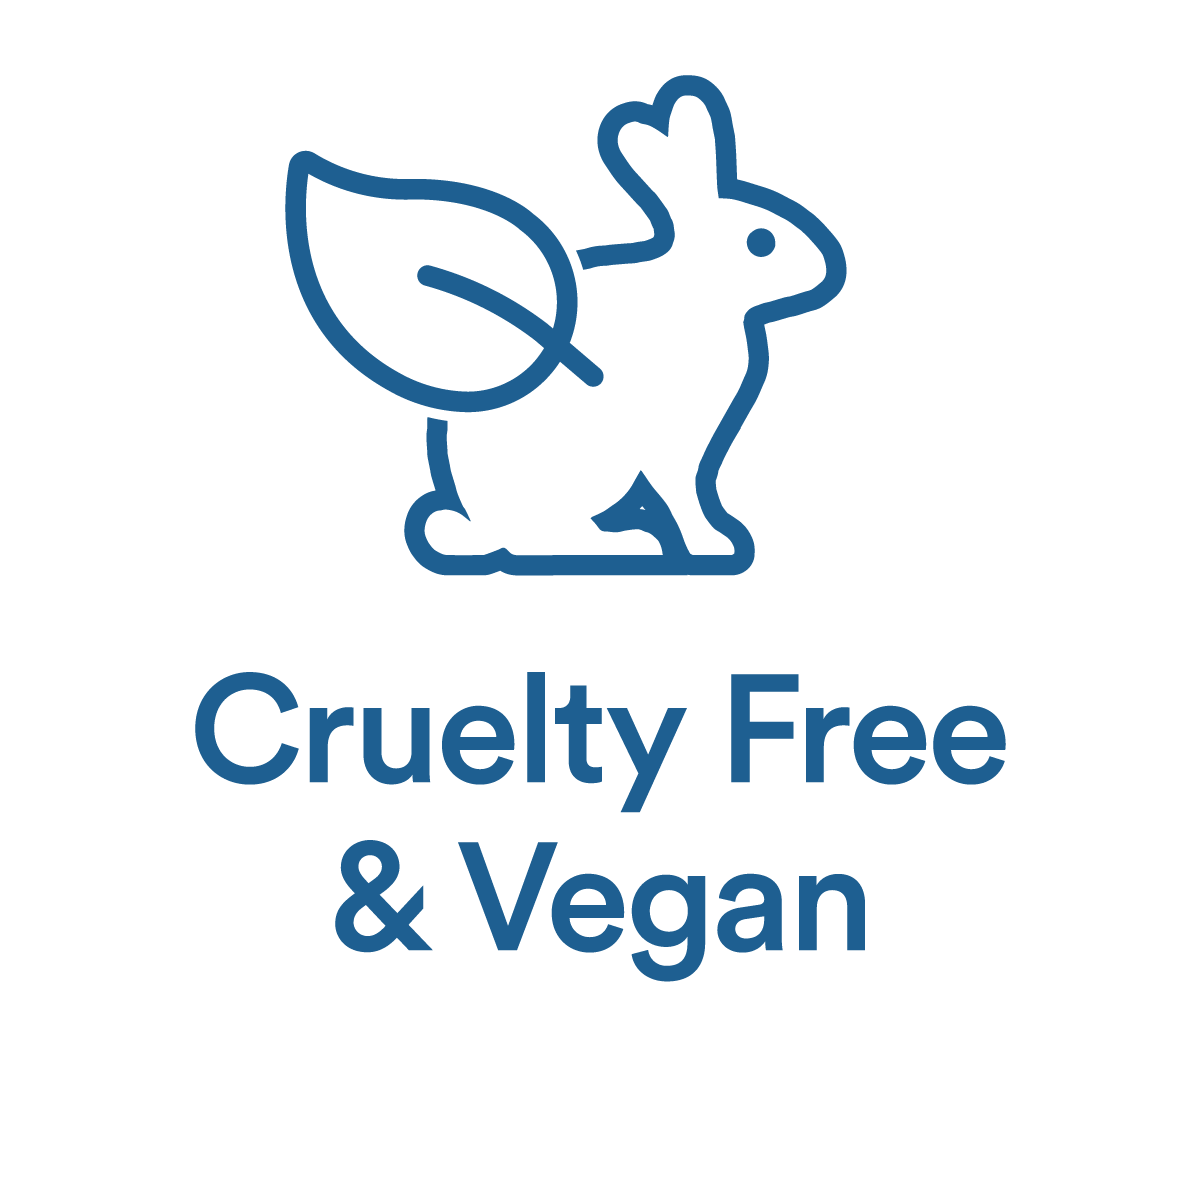 Cruelty-Free and Vegan Free